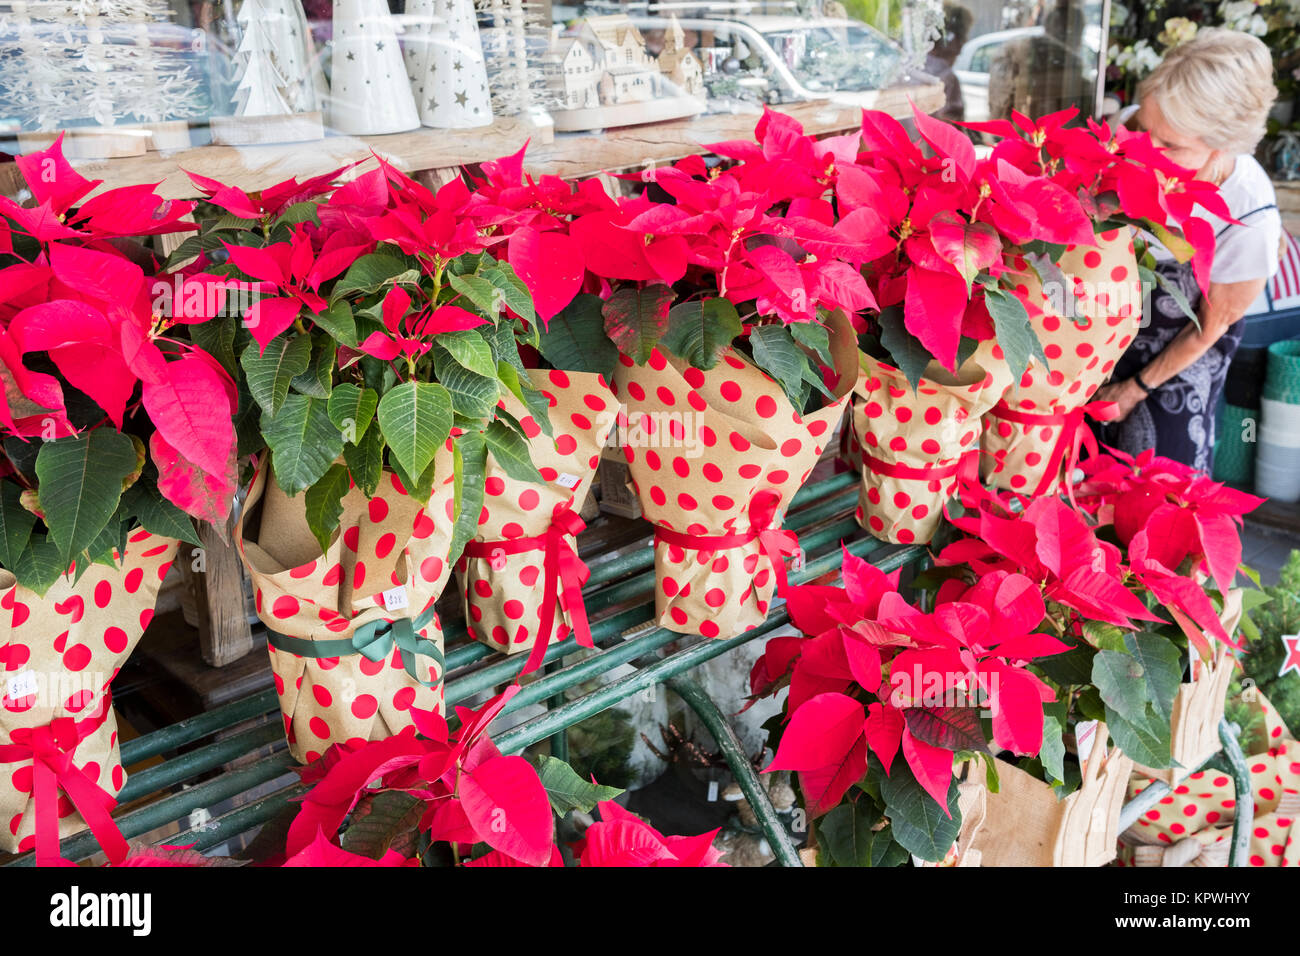 Buy Plants Sydney Red Christmas Poinsettia Plants In Pots For Sale At A